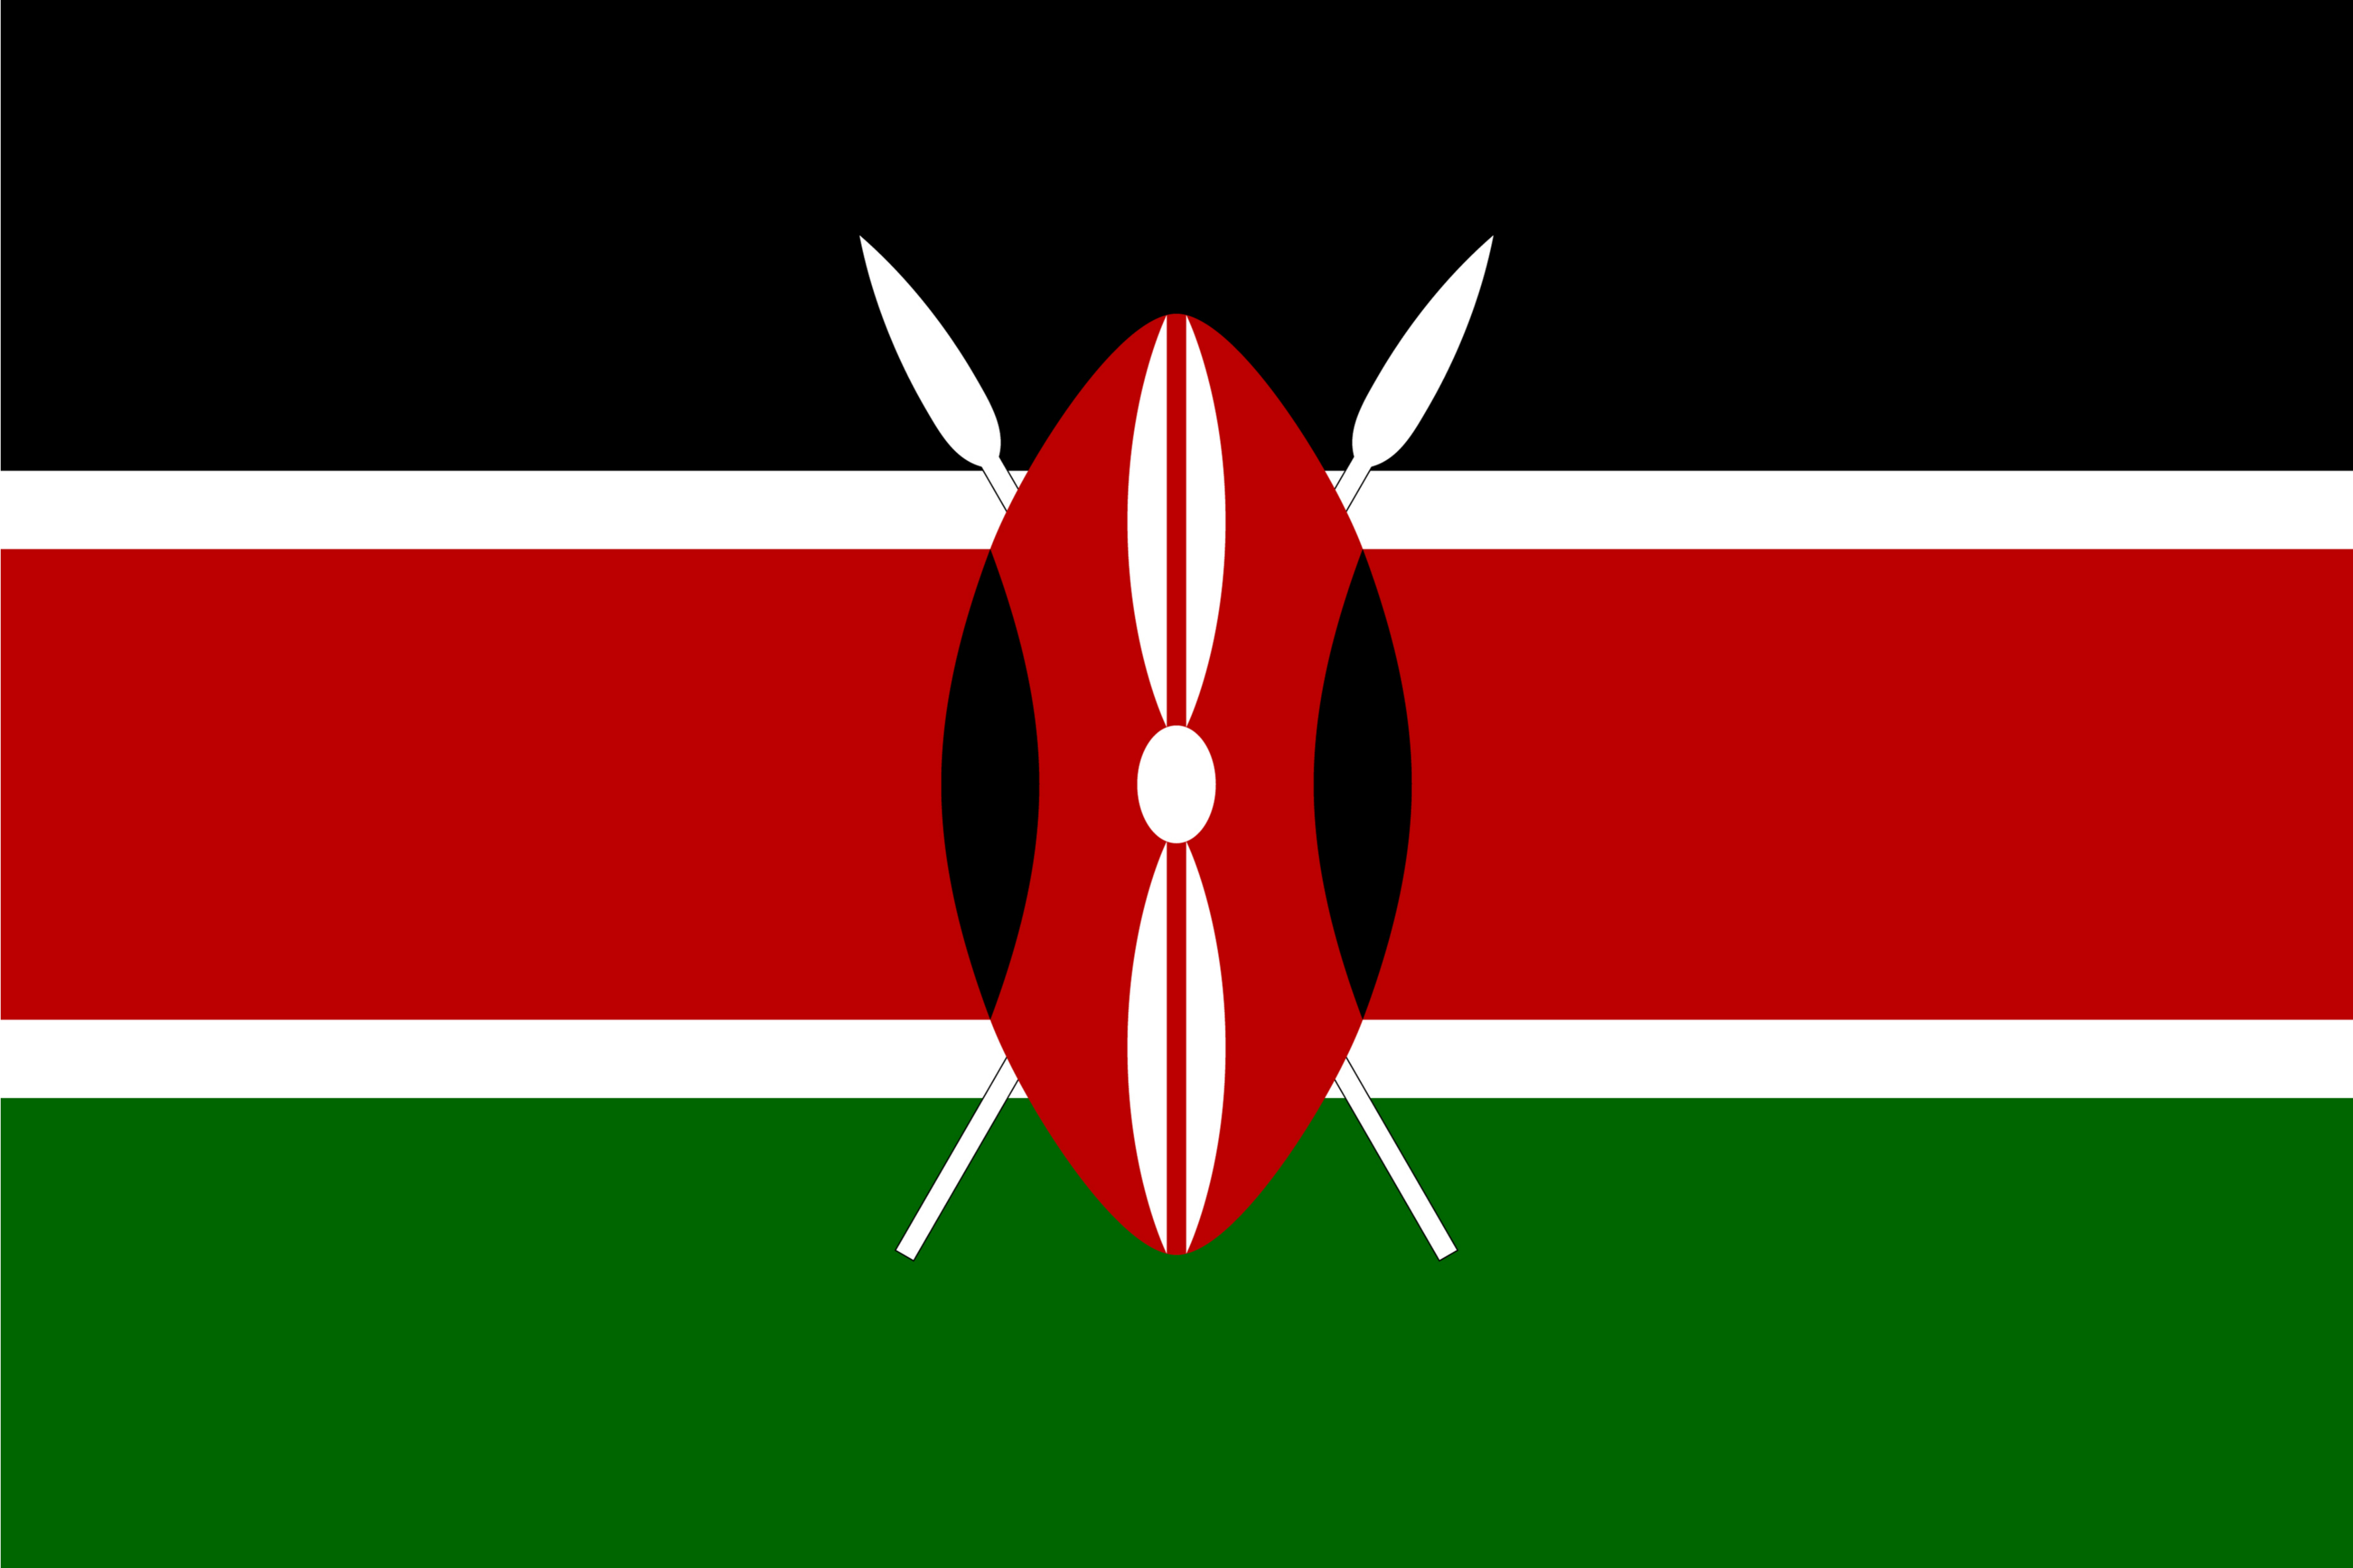 The flag of Kenya is a tricolor flag of black (top), red, and green horizontal bands separated from each other by two white stripes, with a traditional shield covering crossed spears.